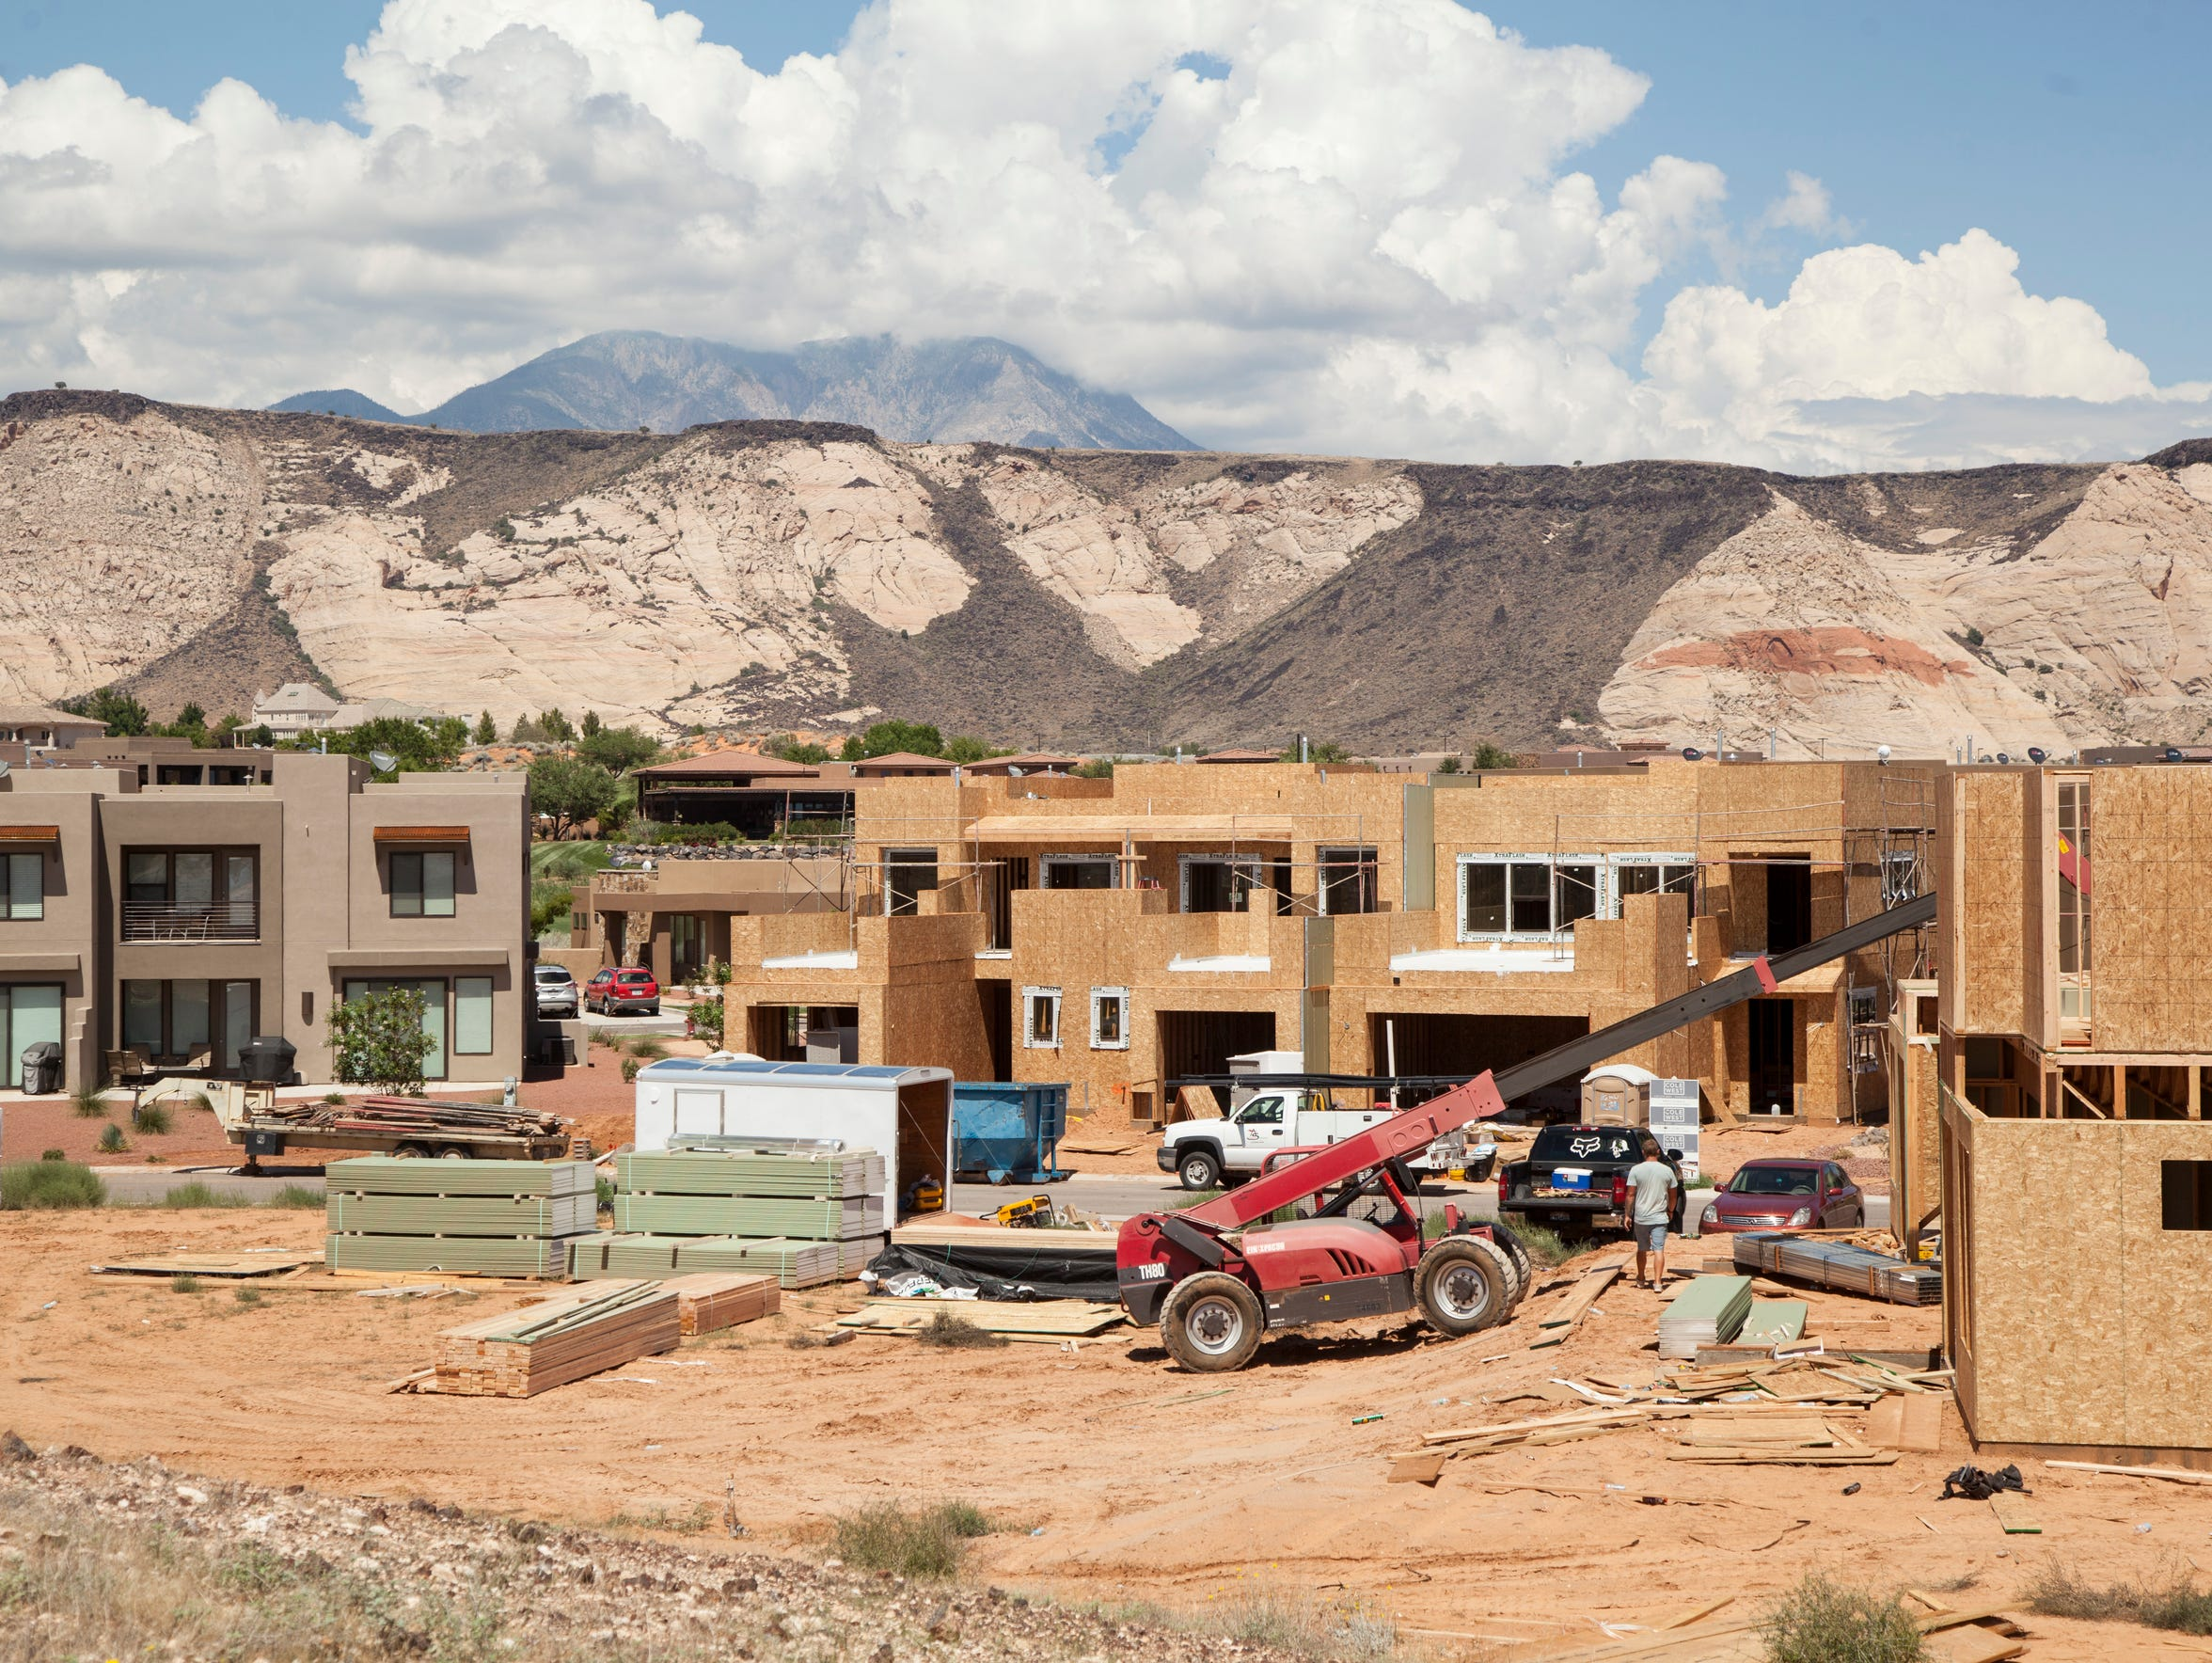 Construction crews continue building homes in the Ledges